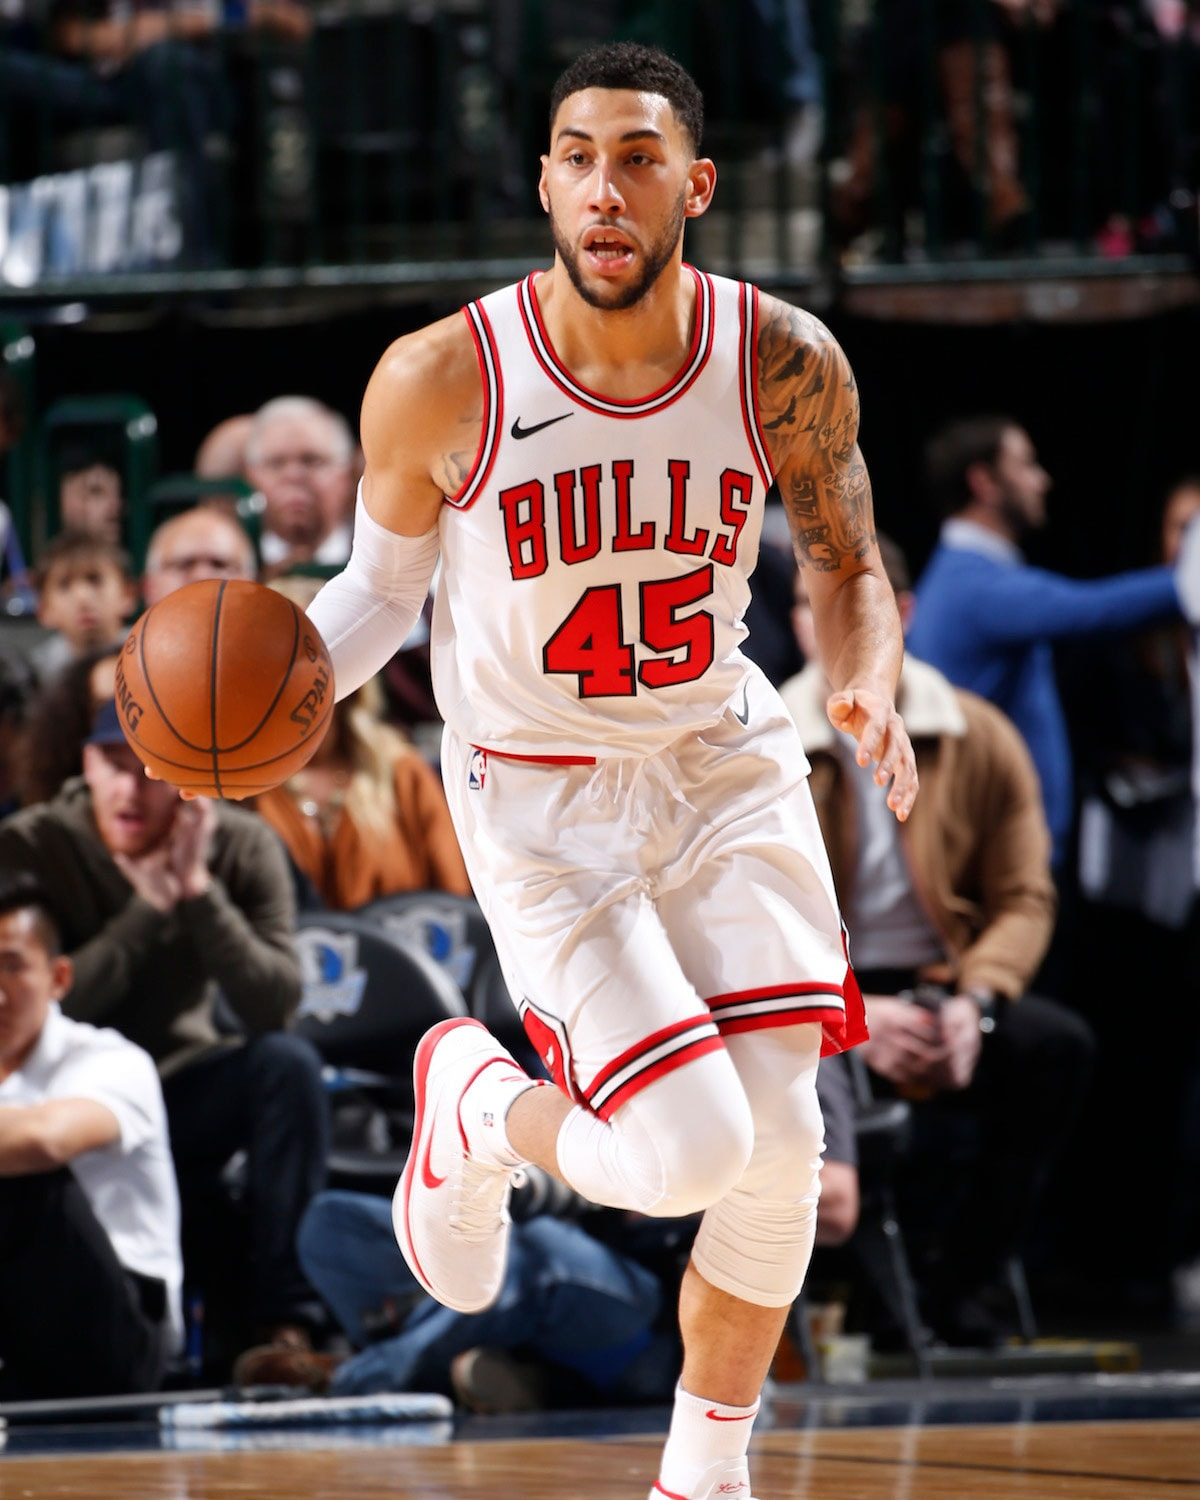 Denzel Valentine dribbles the ball.